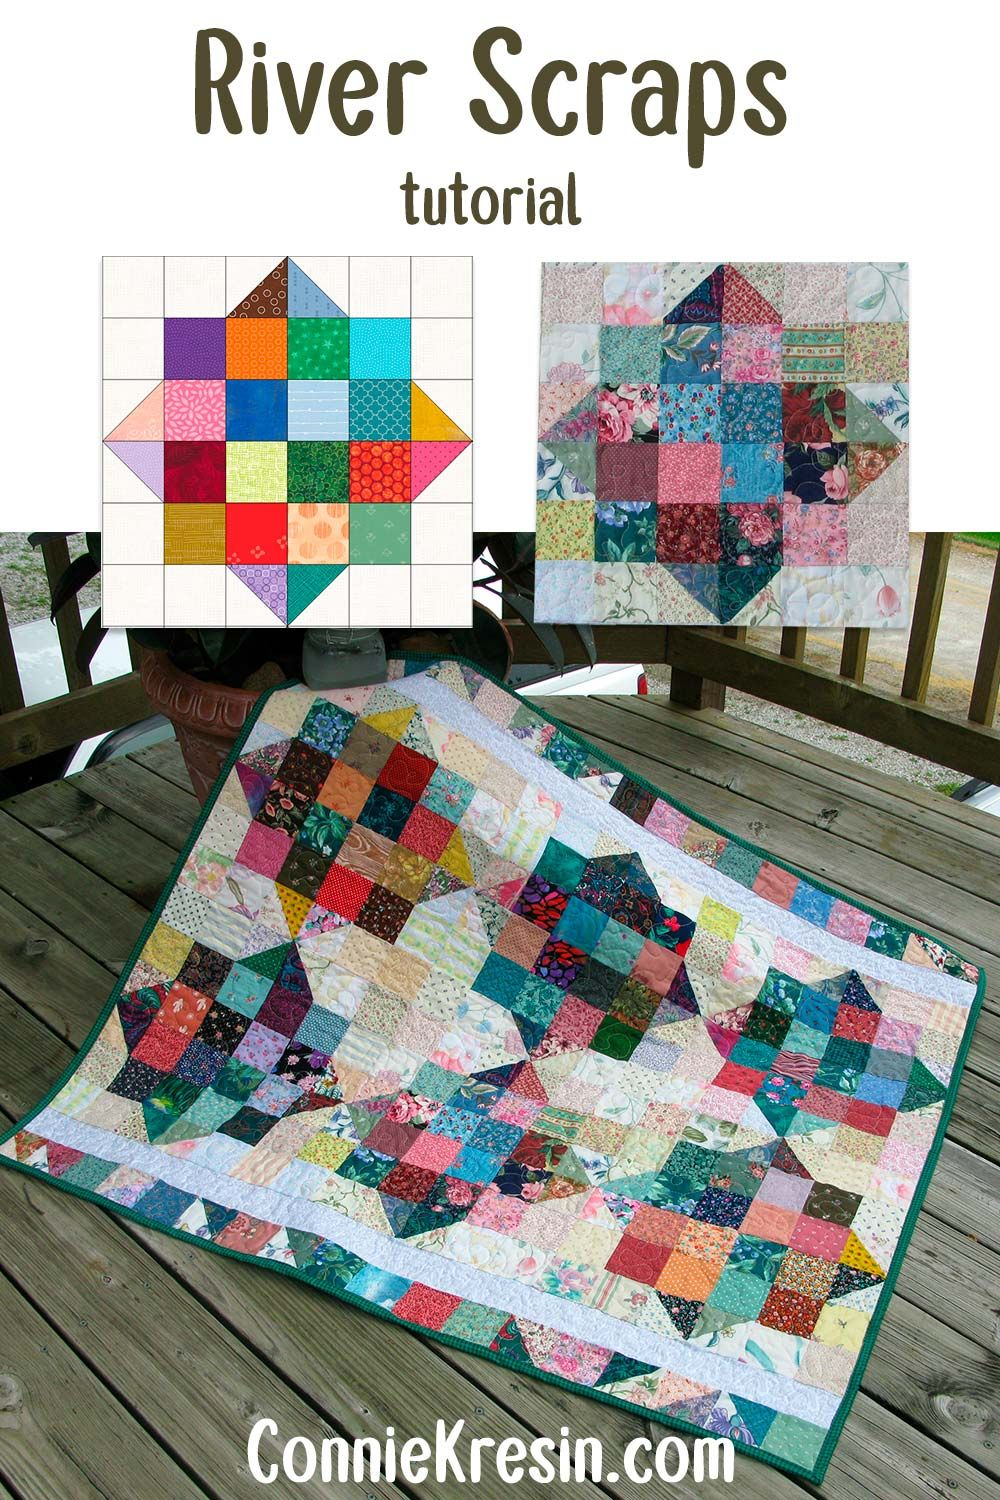 River Scraps Baby Quilt Freemotion By The River In 2020 Easy Quilt Tutorials Scrap Quilt Patterns Scrap Quilts